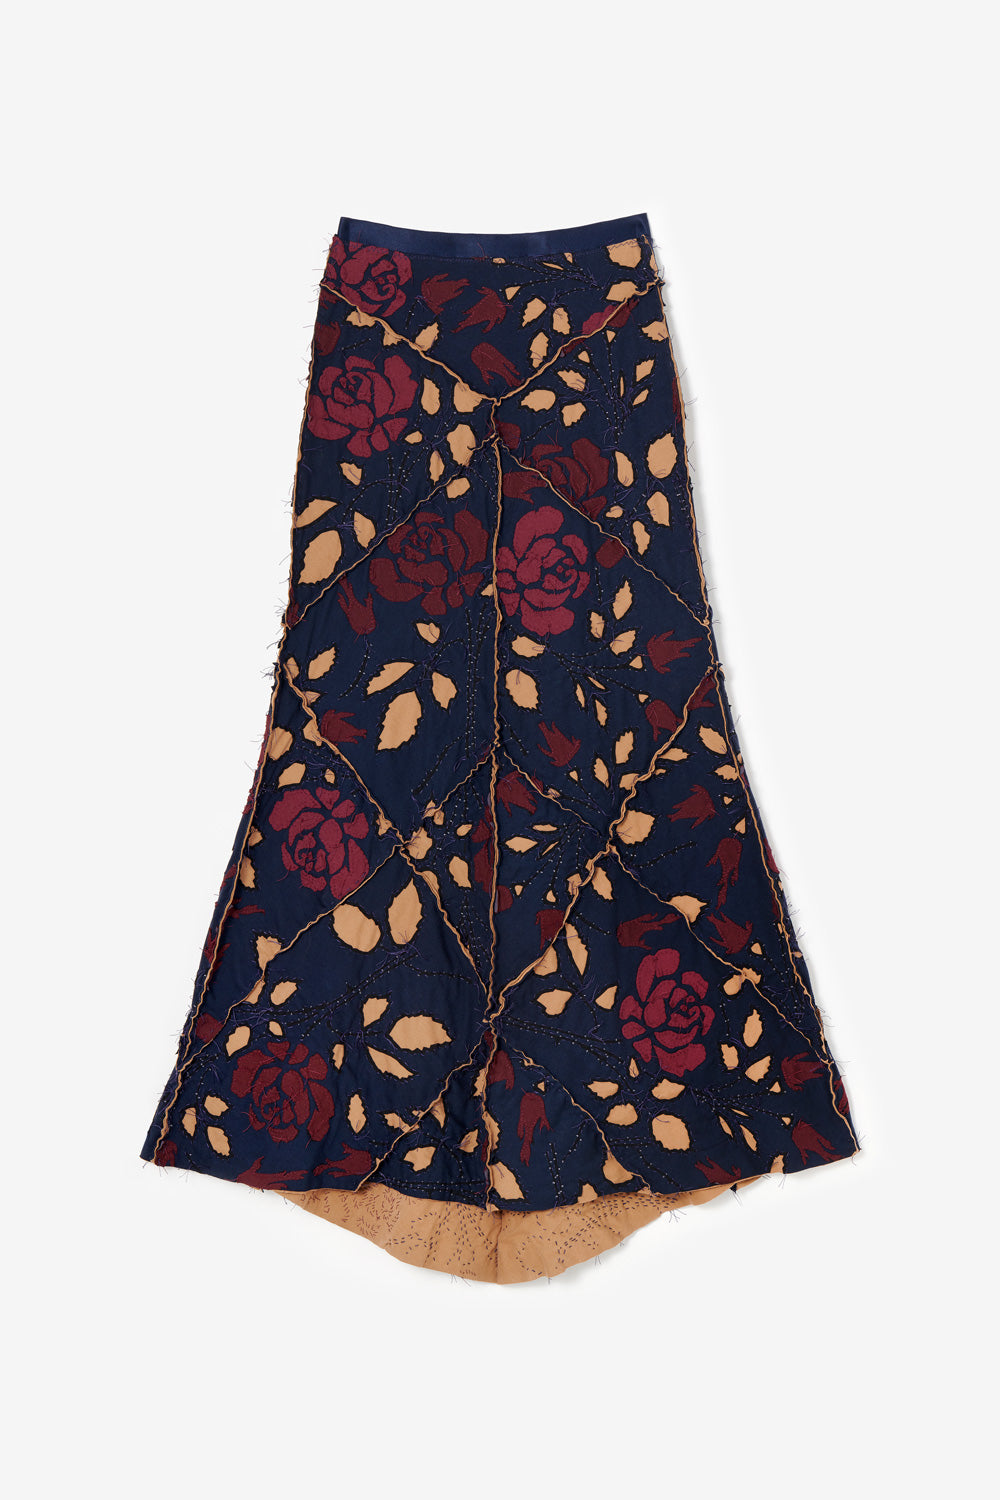 Alabama Chanin Sustainably Designed Long Fitted Skirt in Rose